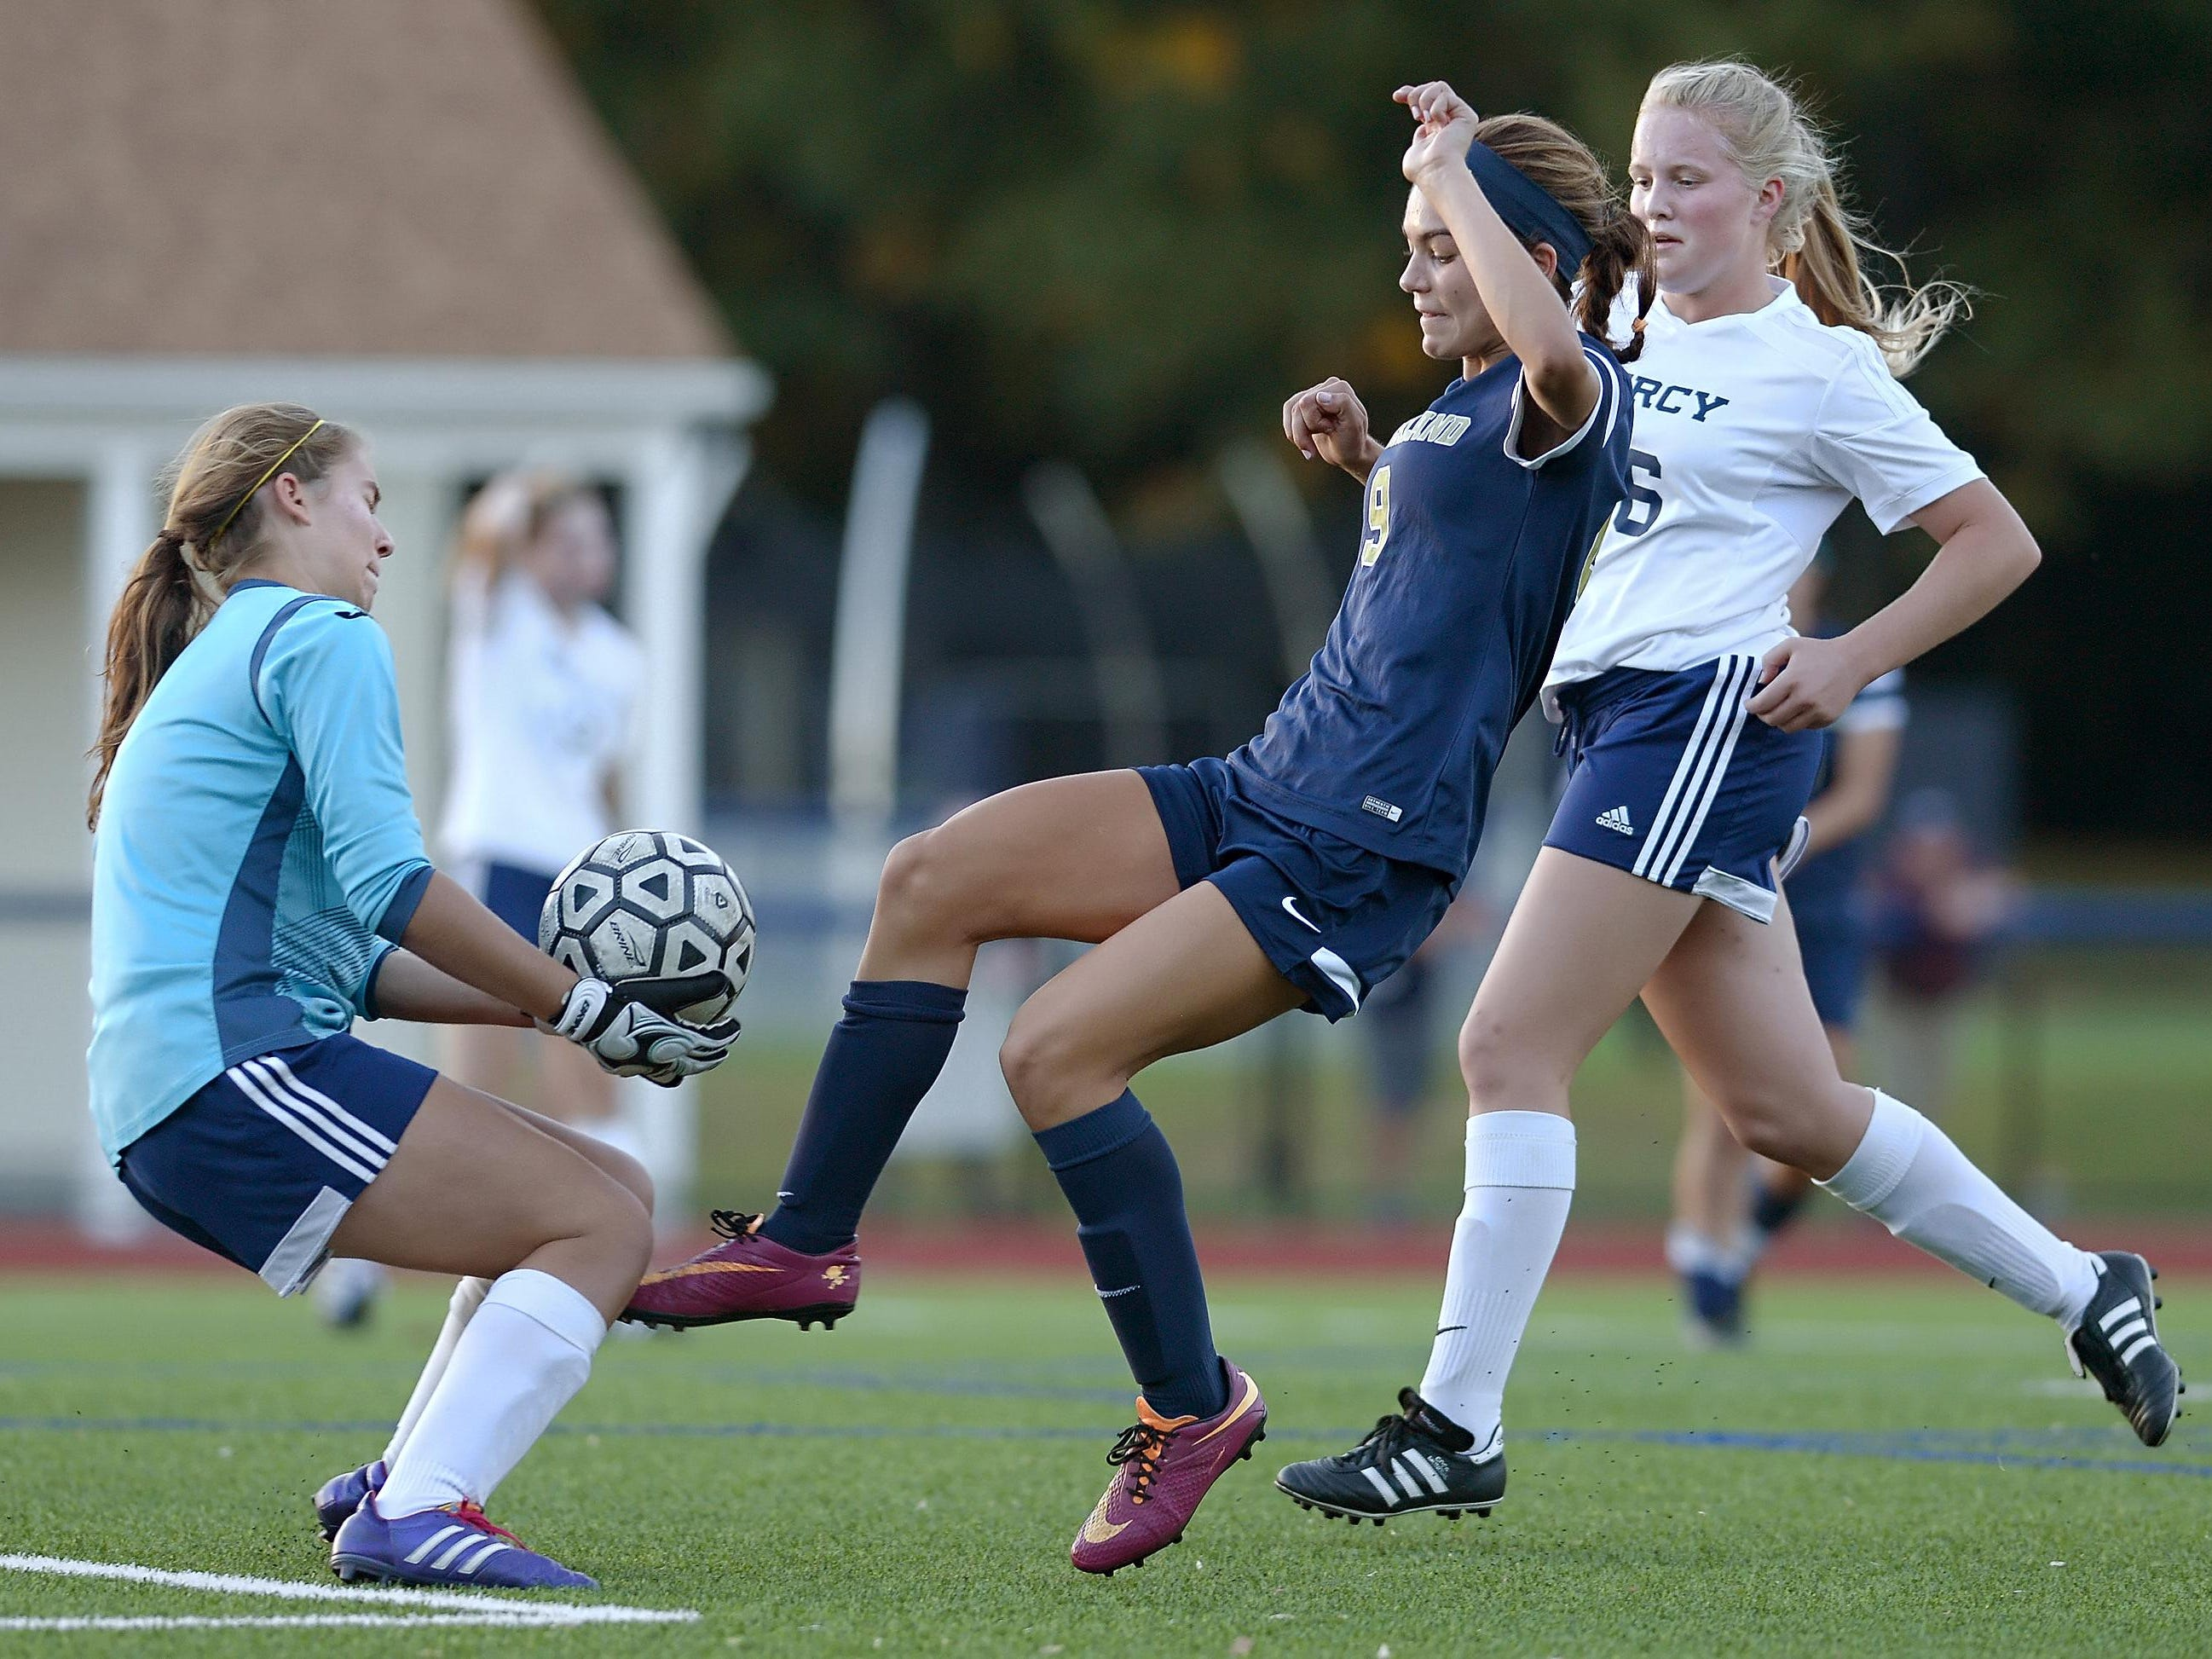 Mercy goalie Madeline Pizzo, left, grabs the ball as Pittsford Sutherland's Annie Hanna reaches for it.